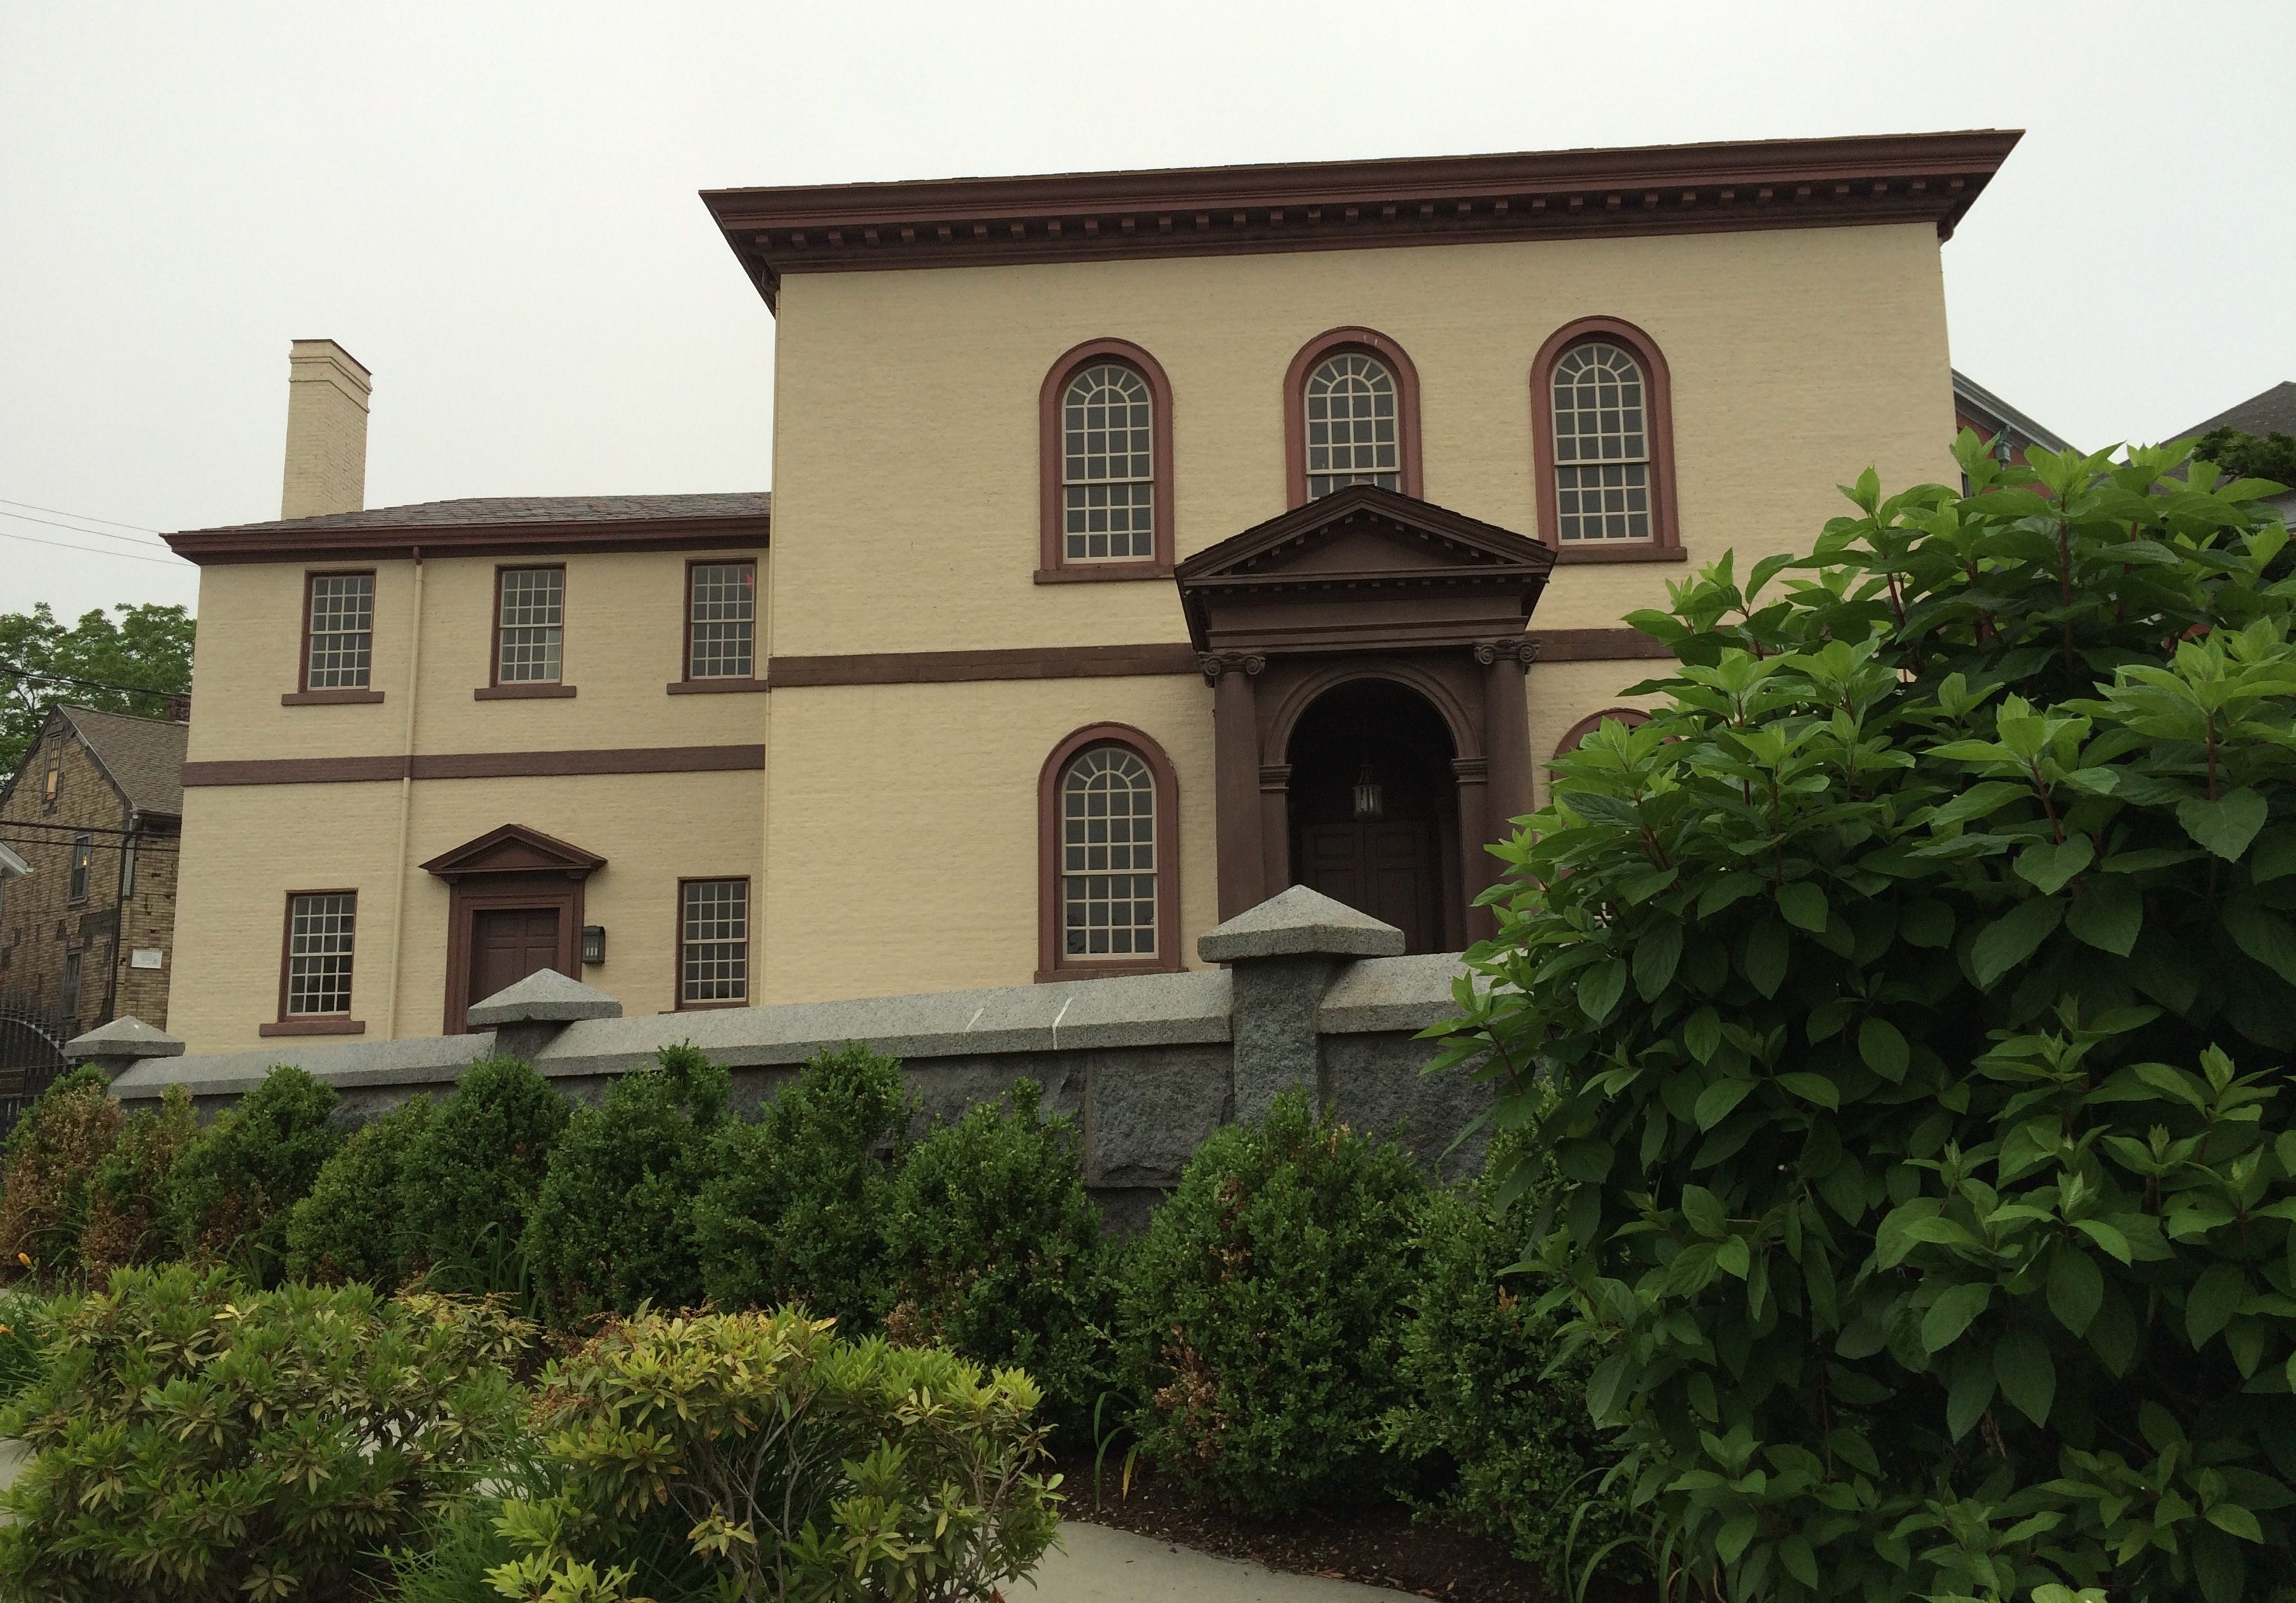 Touro, dedicated in 1793, is the oldest synagogue in America.